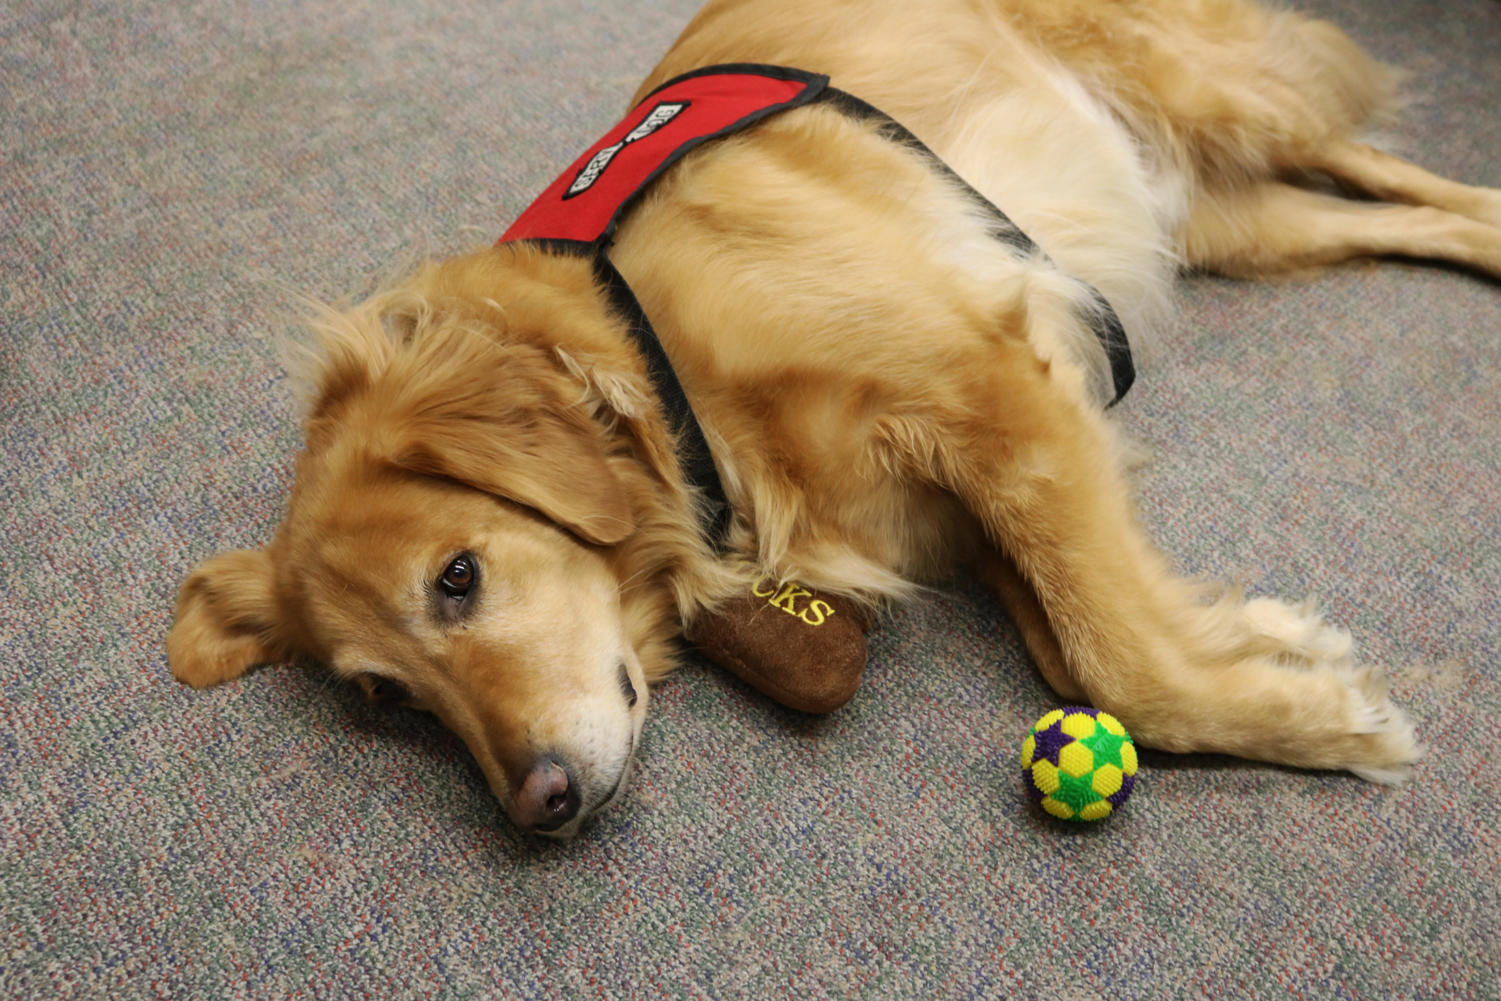 Beau relaxes while students study in the honors office on the first floor of Monroe Library. Although he used to suffer from anxiety, Beau now acts as an emotional support dog for Loyola students. Photo credit: Andres Fuentes